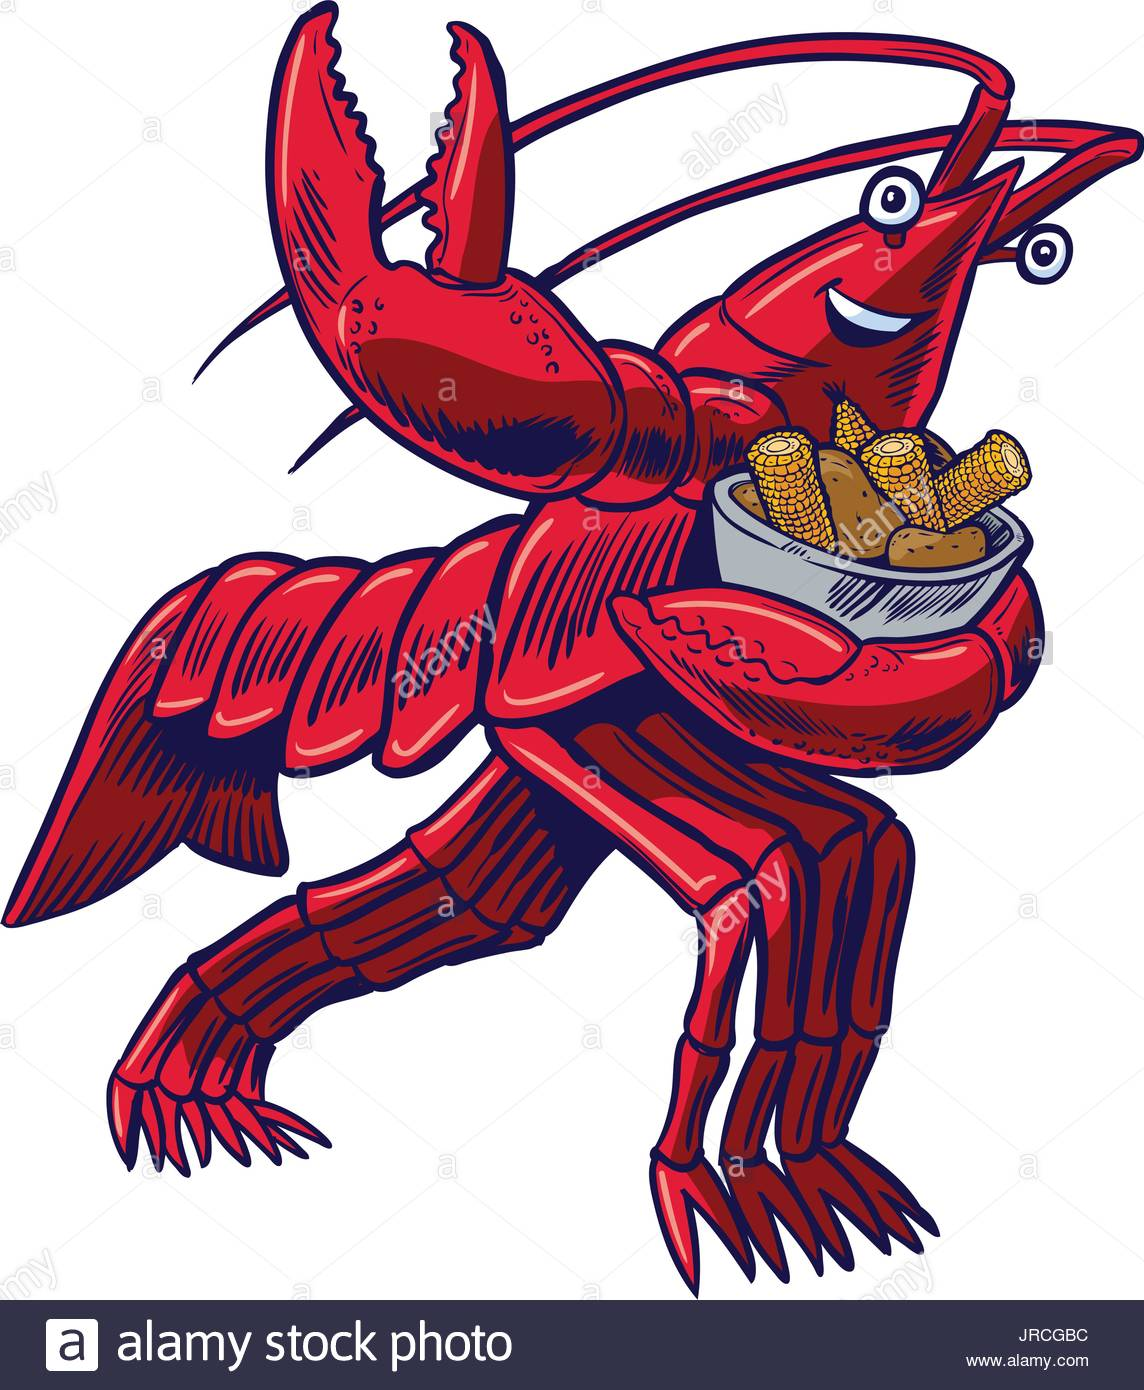 1144x1390 Lobster Vector Stock Photos Amp Lobster Vector Stock Images